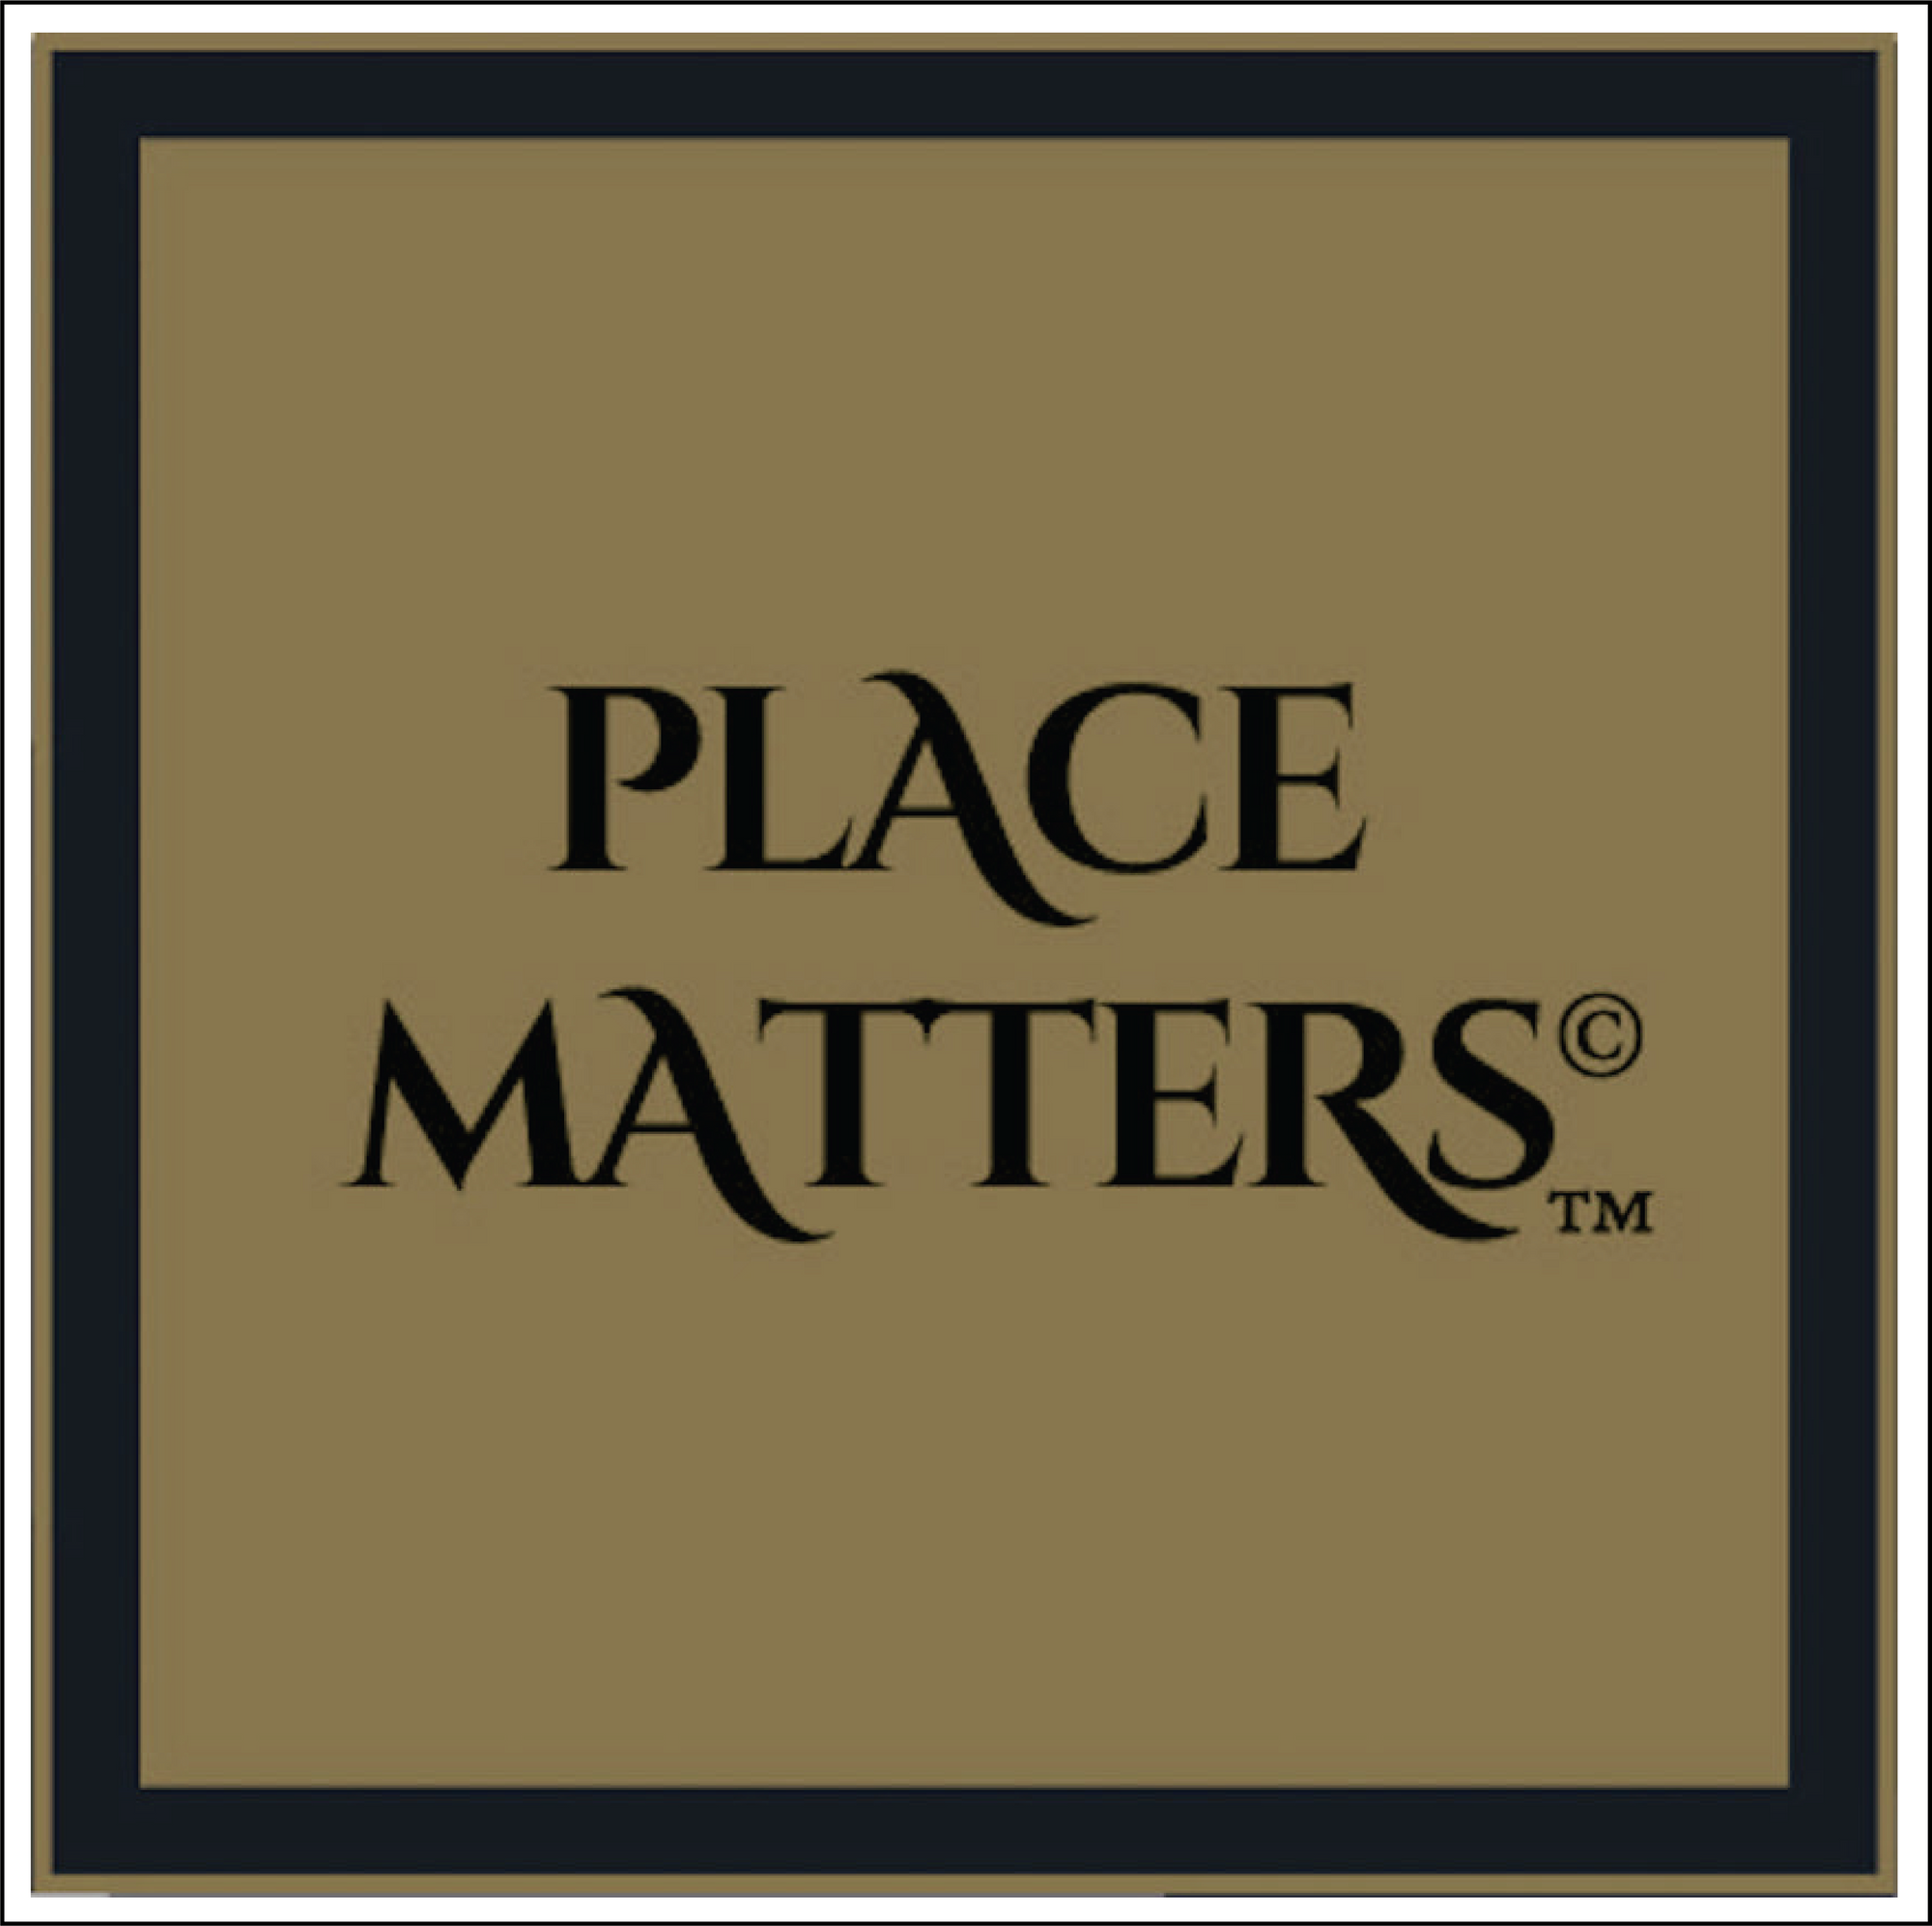 Place Matters